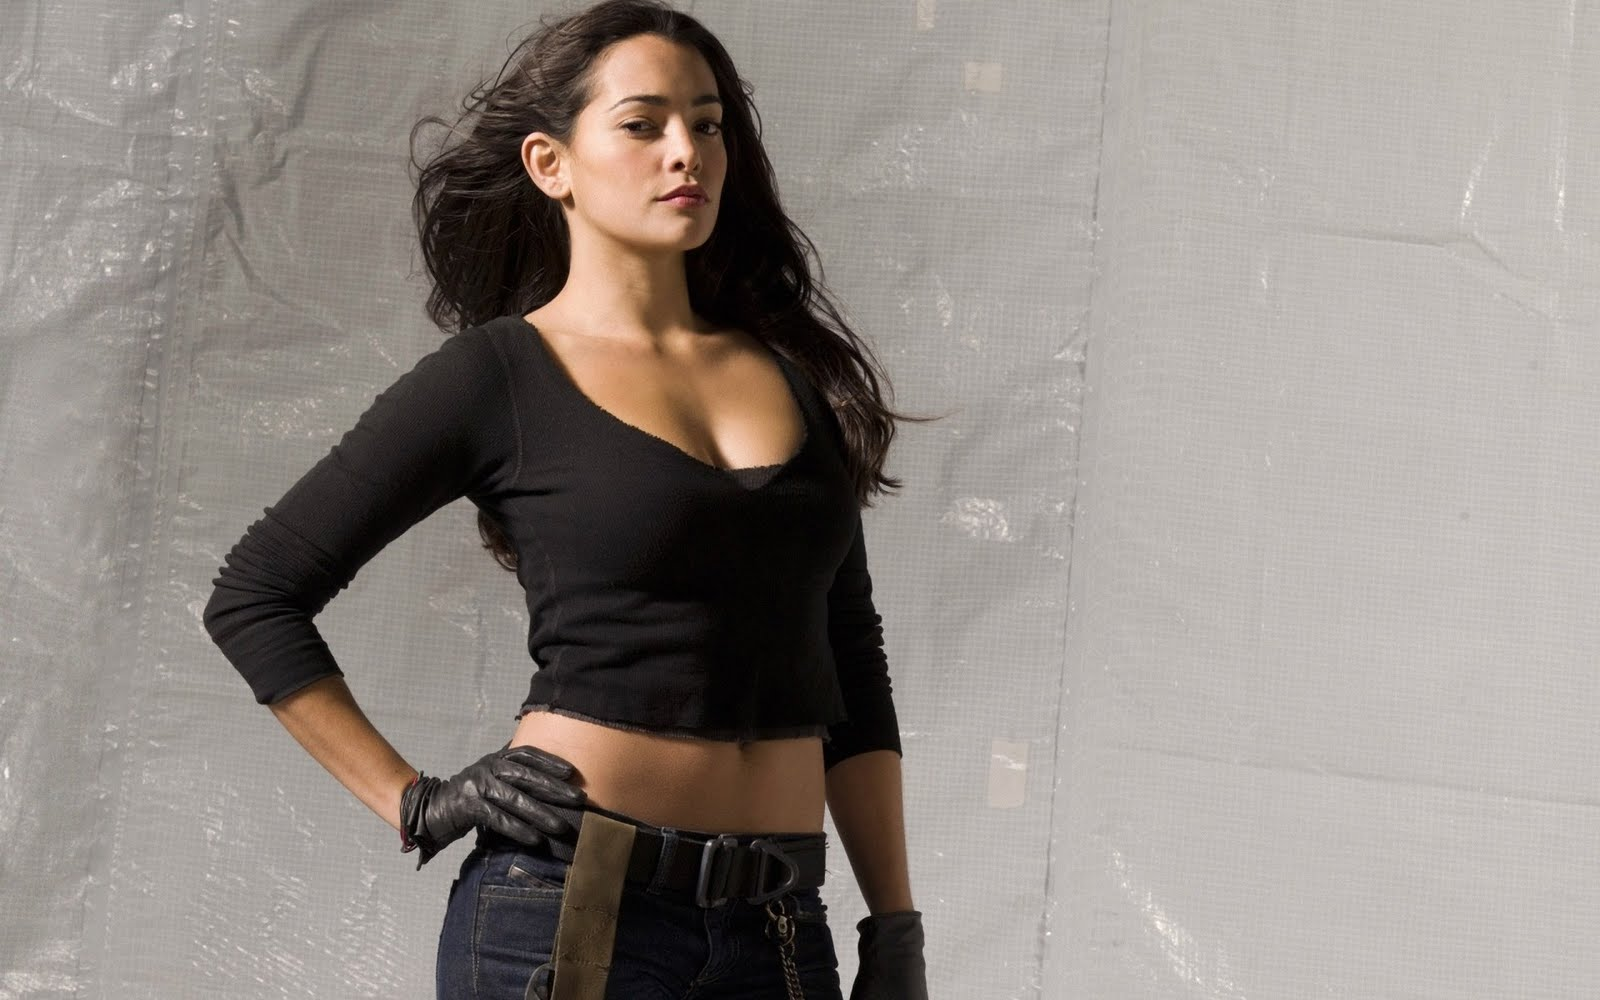 natalie martinez hot wallpaper -#main